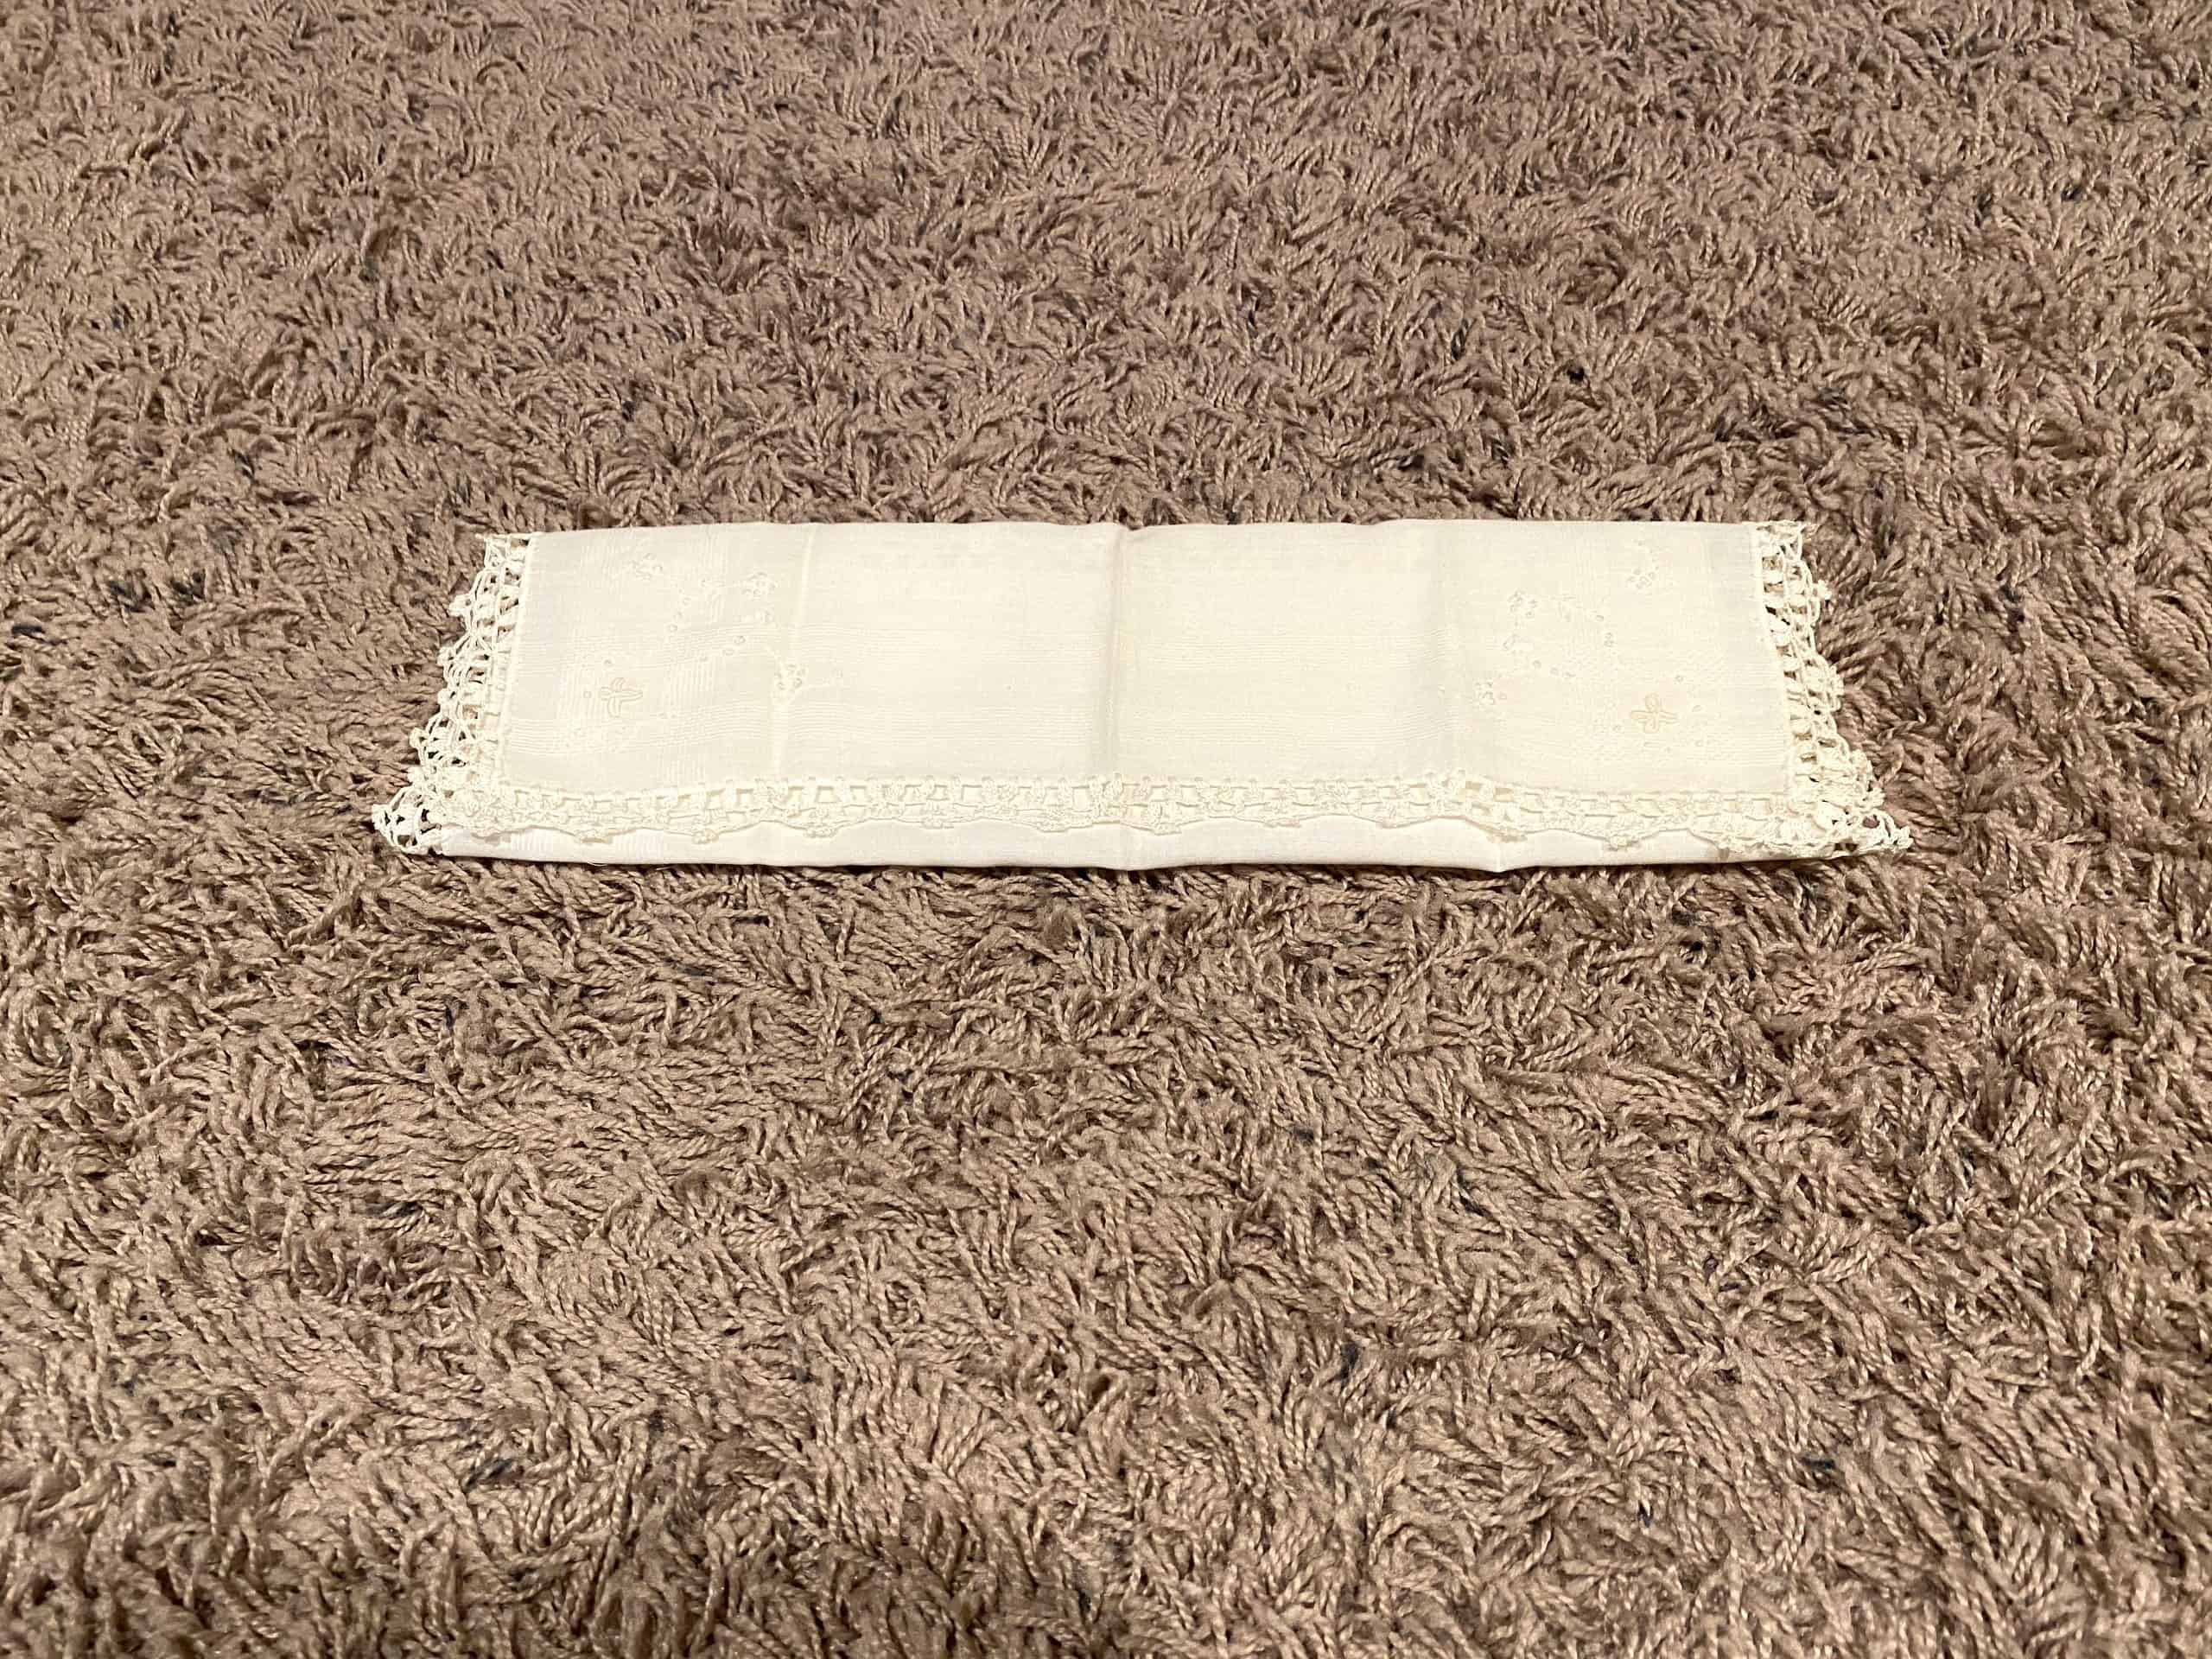 Handkerchief and paper towel used to make your own face mask.